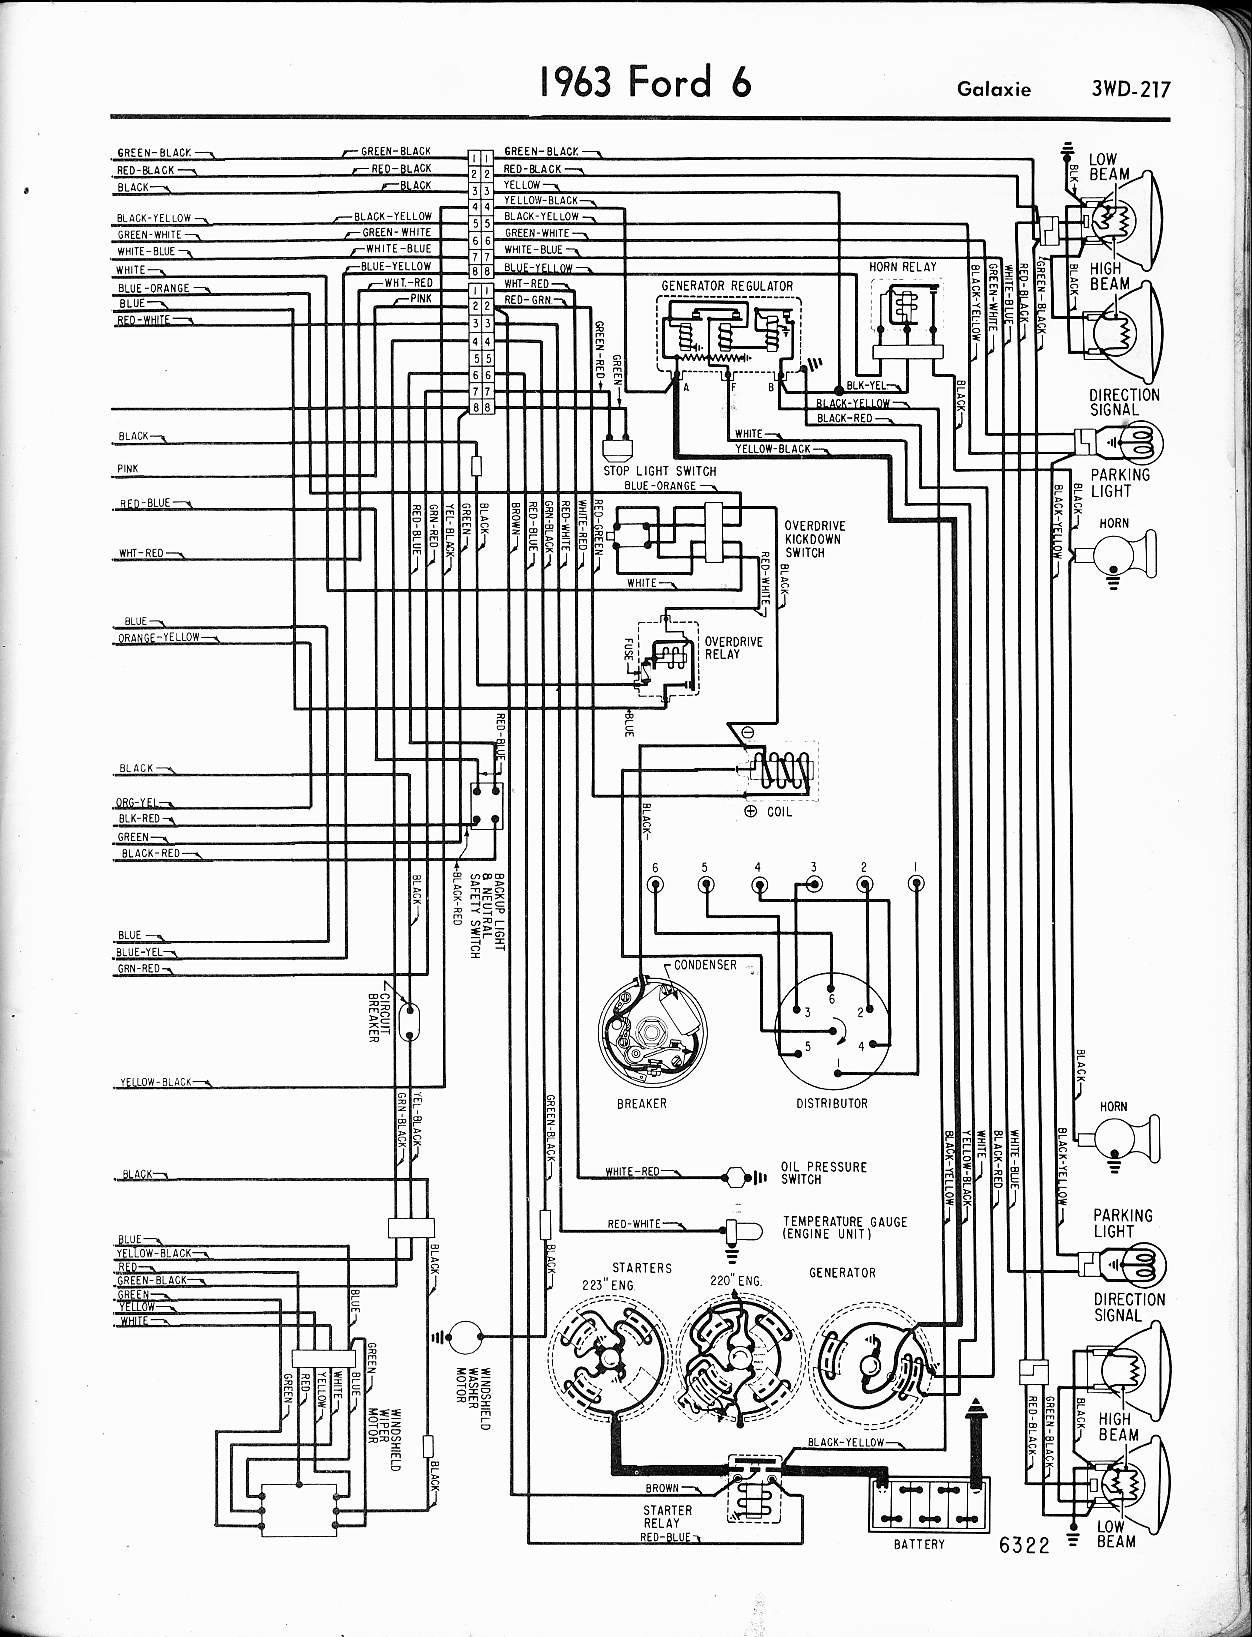 Ford 300 Inline 6 Wiring Diagram